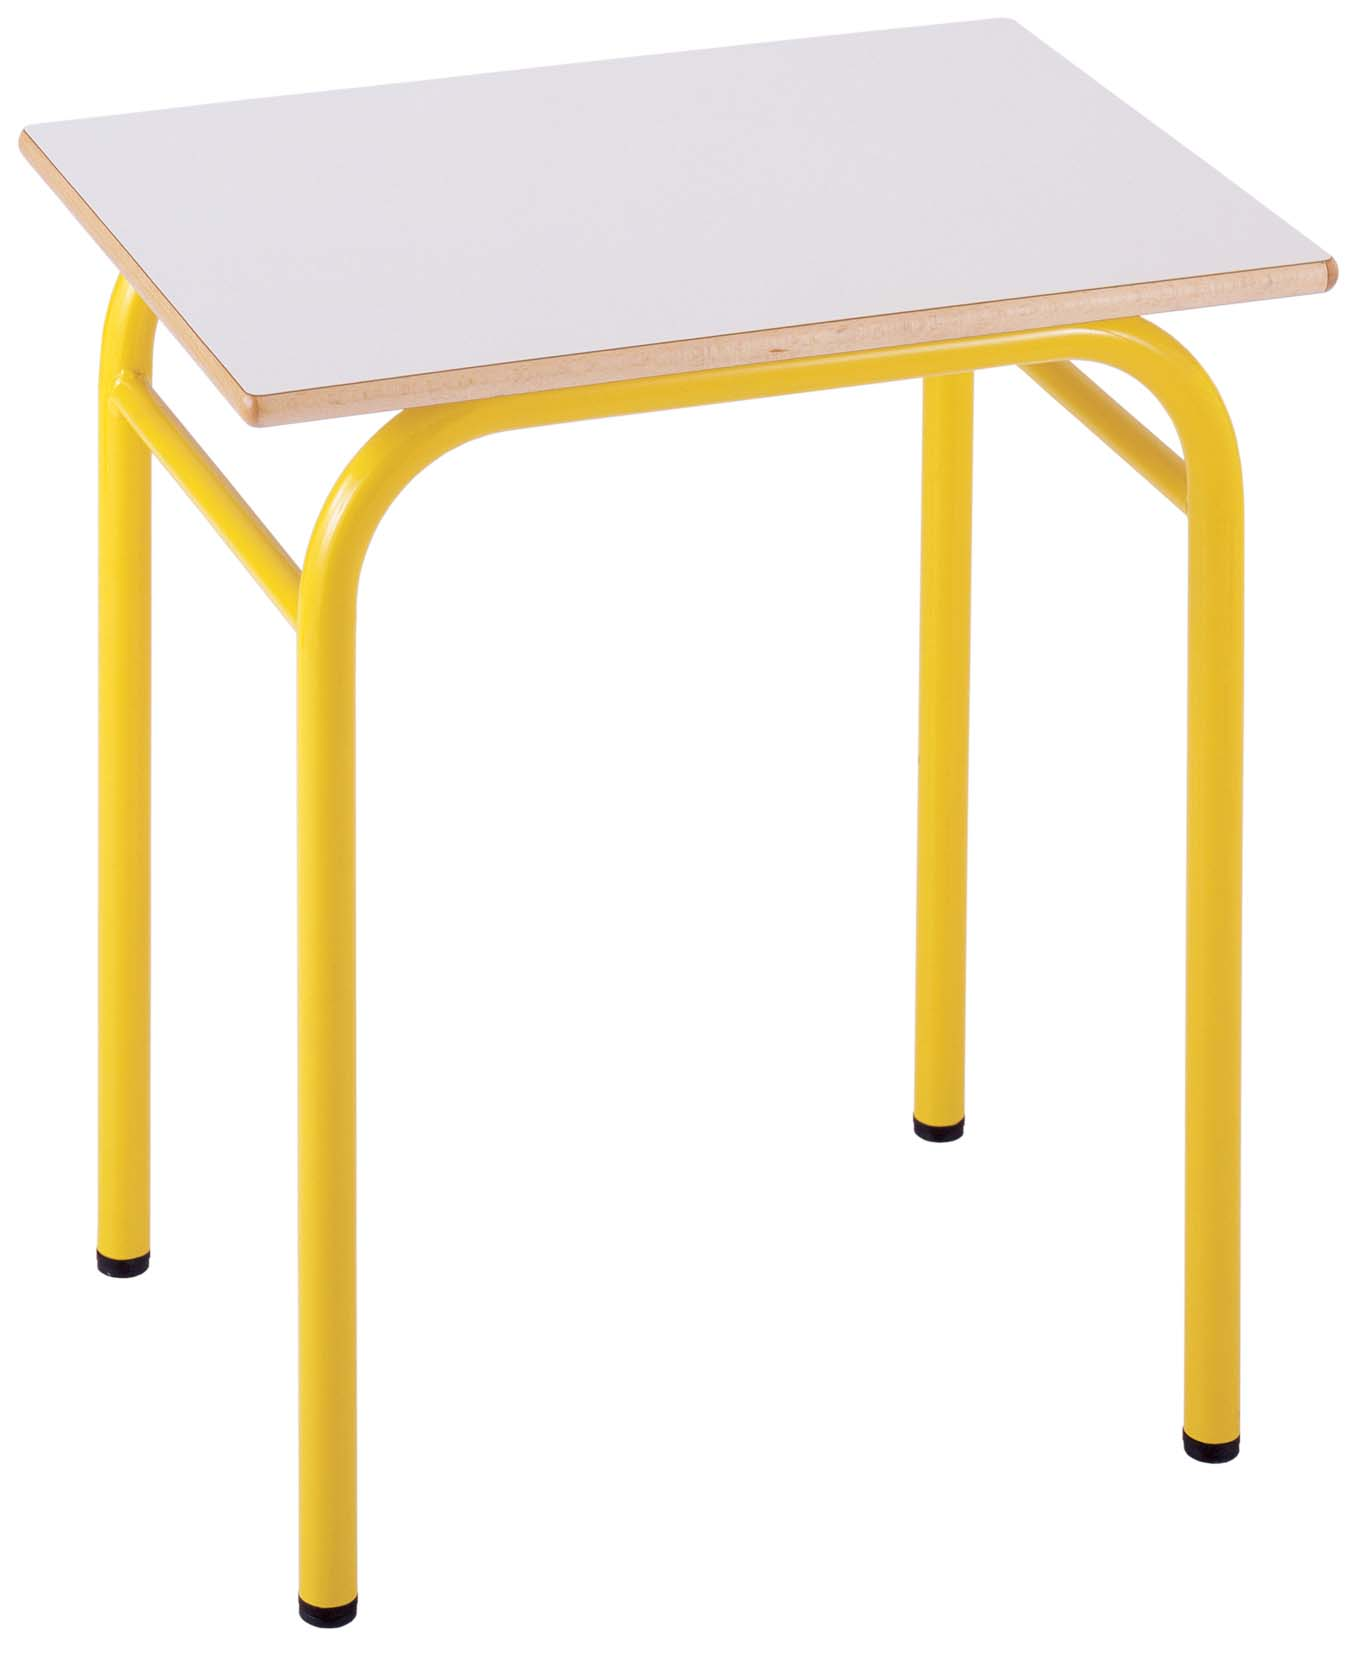 Table scolaire AXIS - photo 2